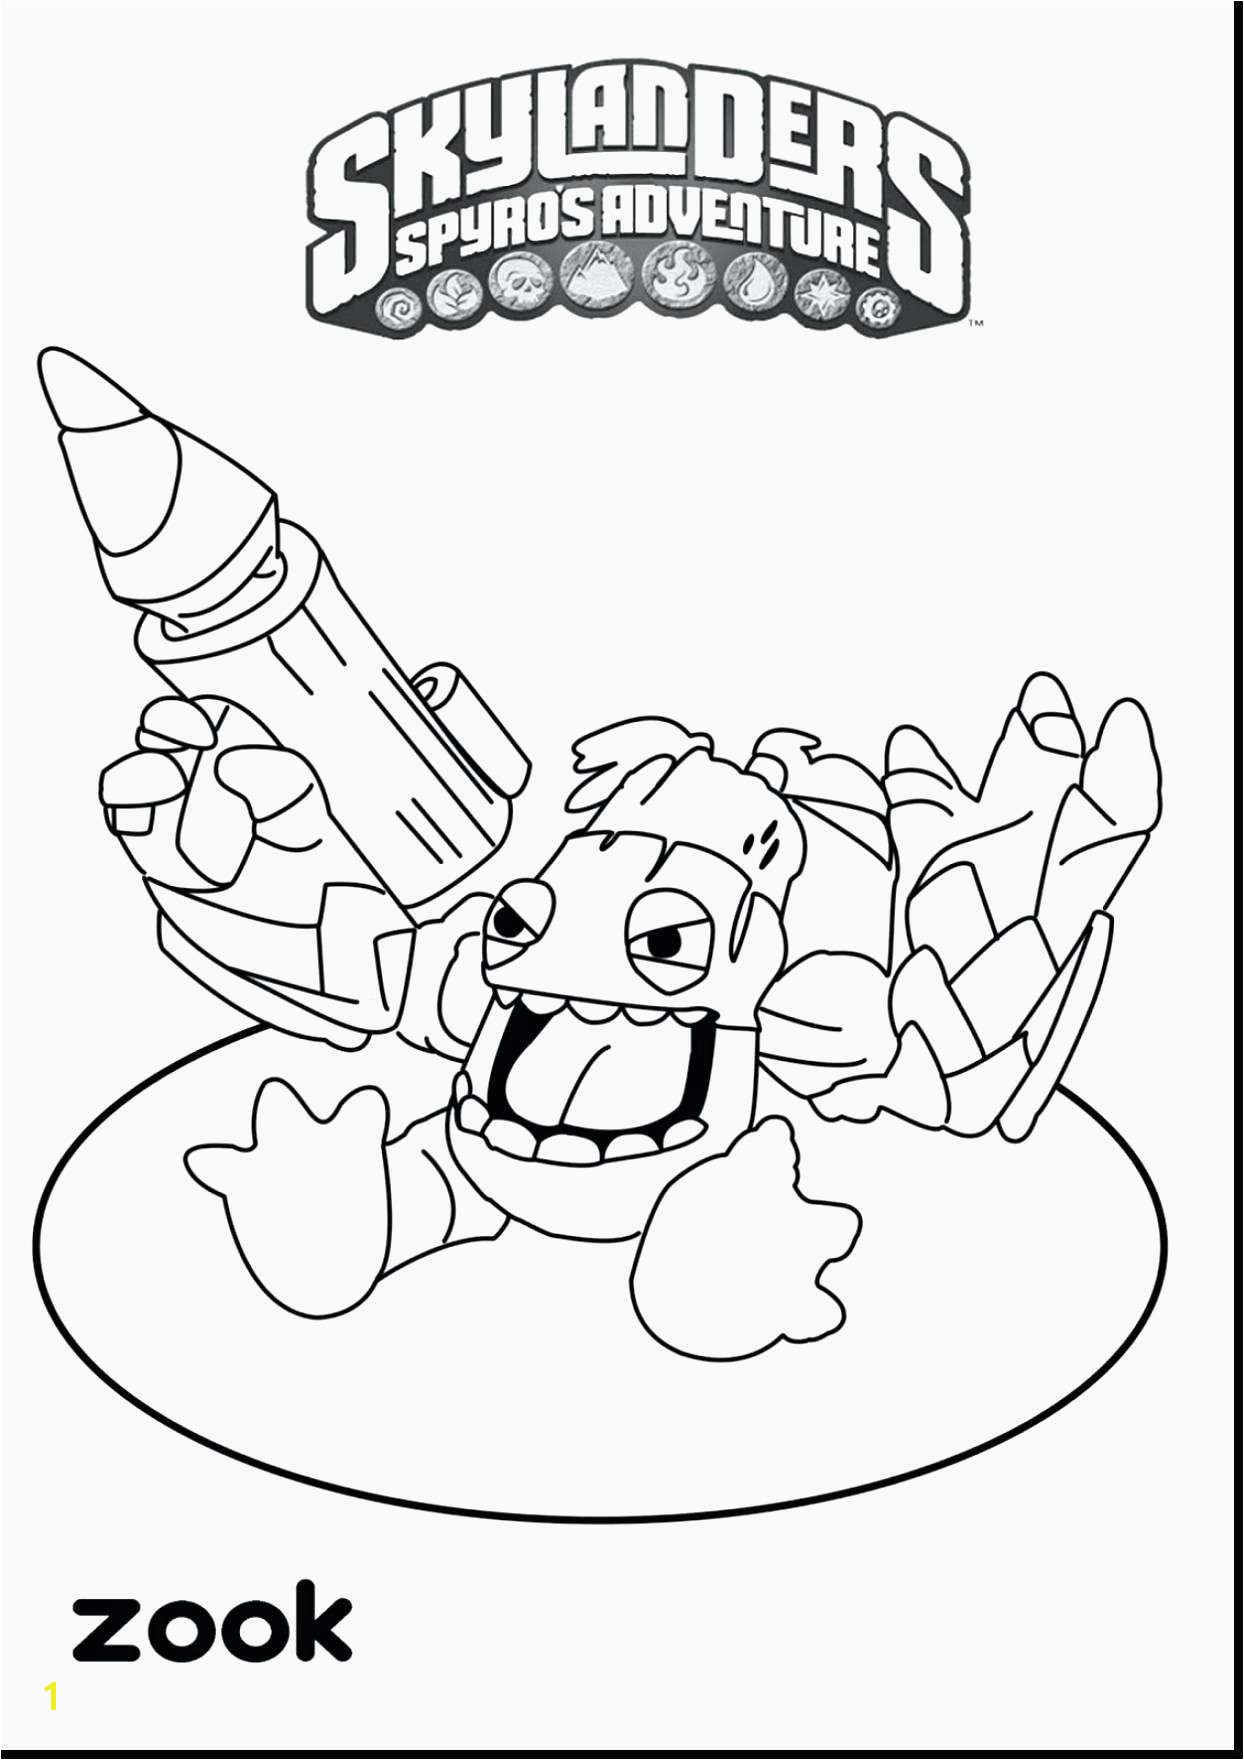 Christmas Puppy Coloring Pages Free Printable Christmas Puppy Coloring Pages